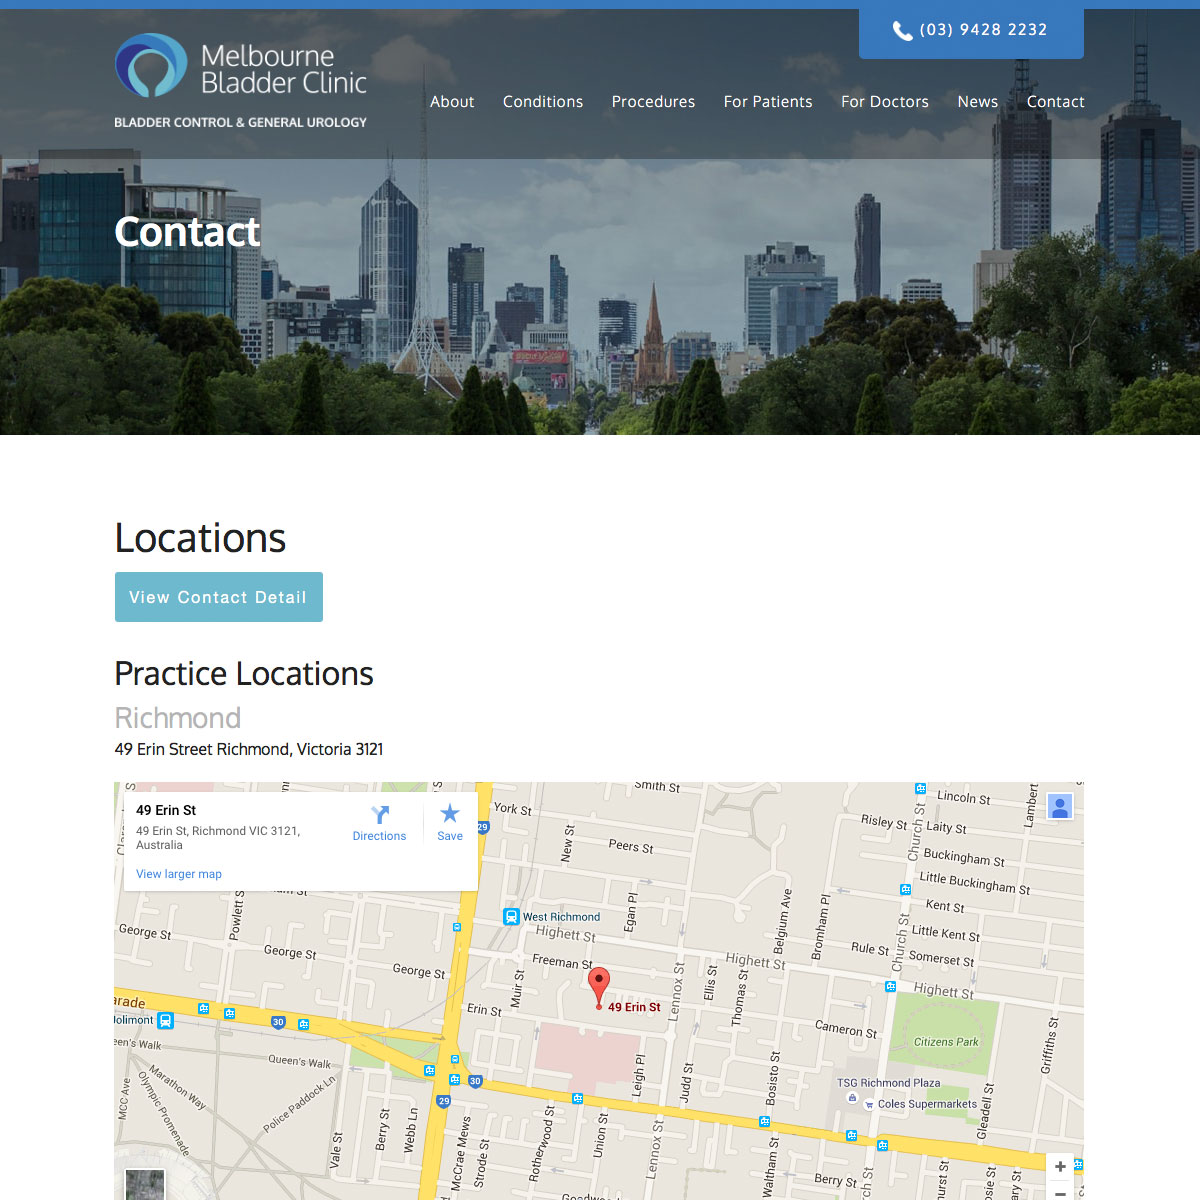 Melbourne Bladder Clinic Locations